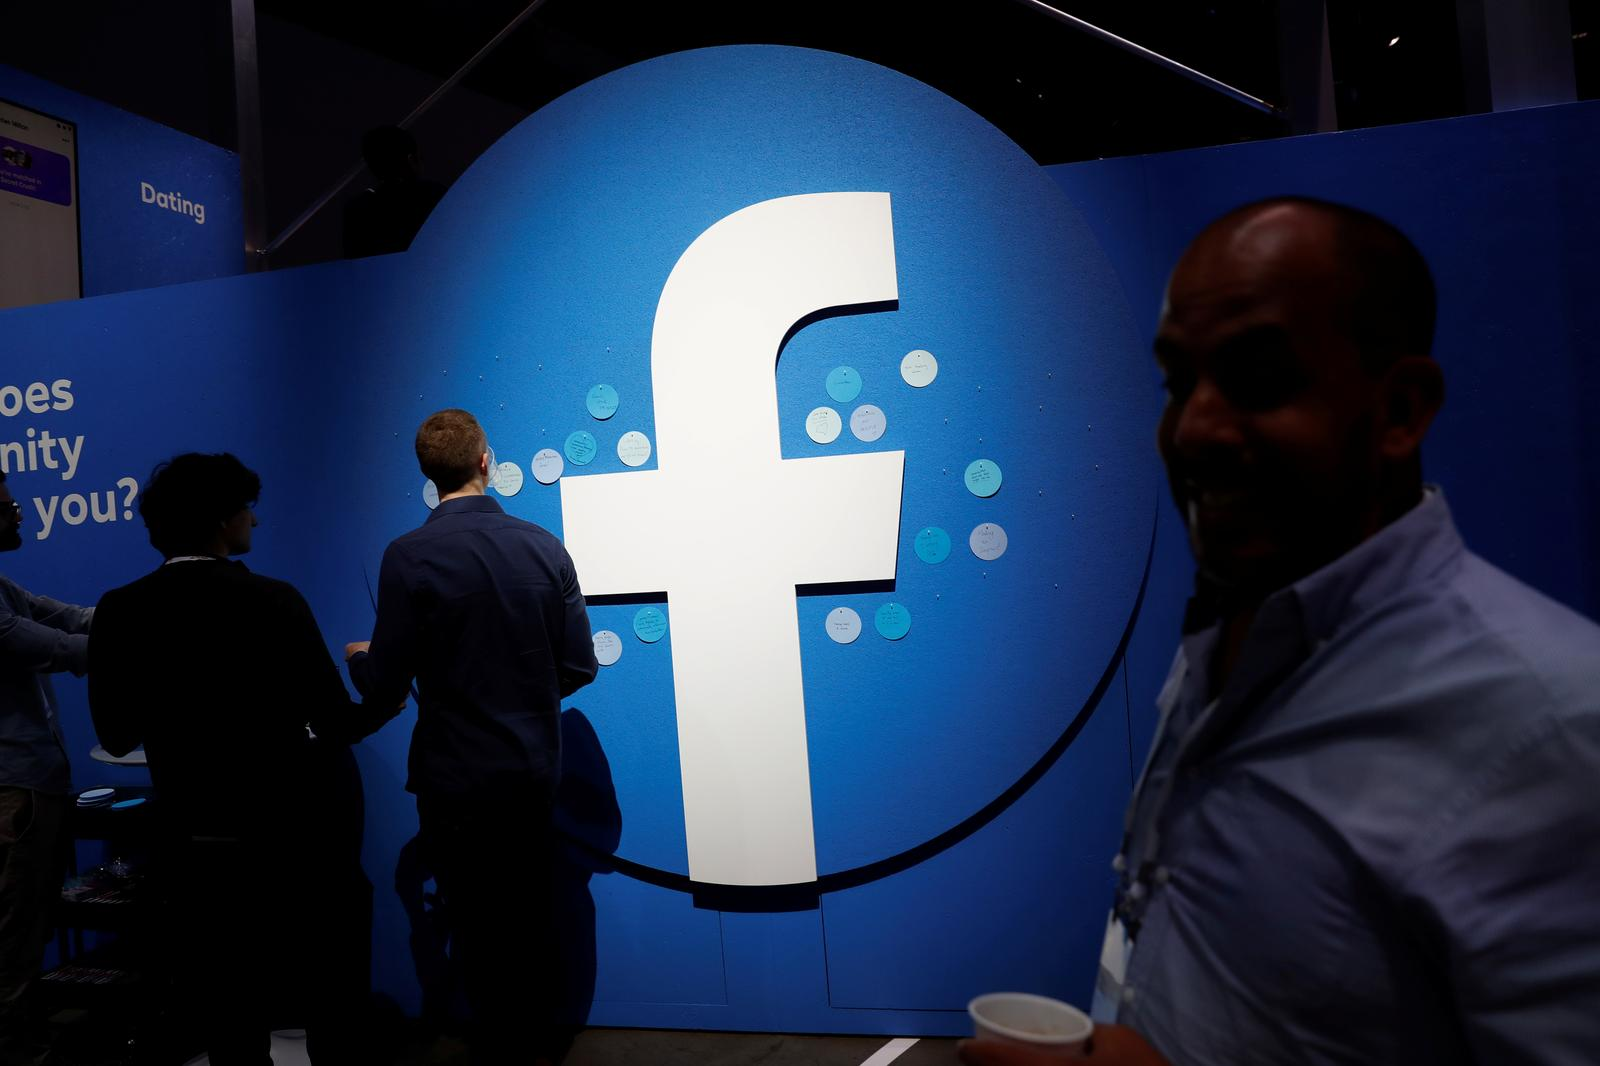 Facebook says group used computer-generated faces to push pro-Trump message